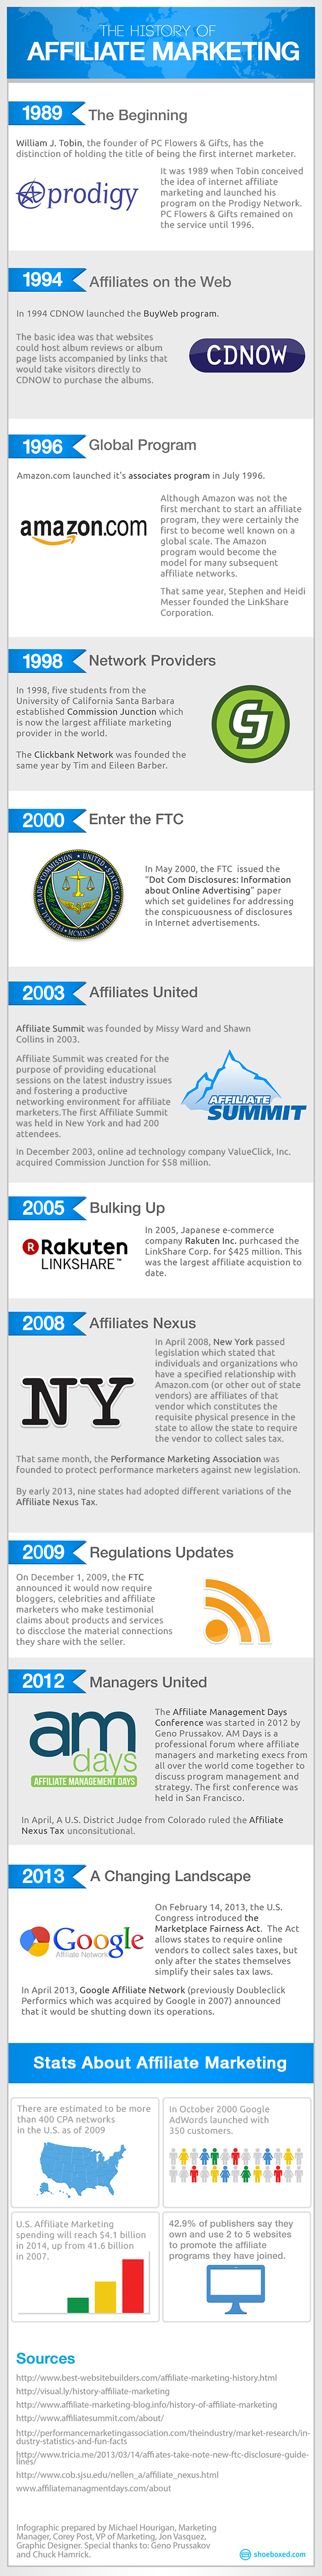 affiliate-marketing history